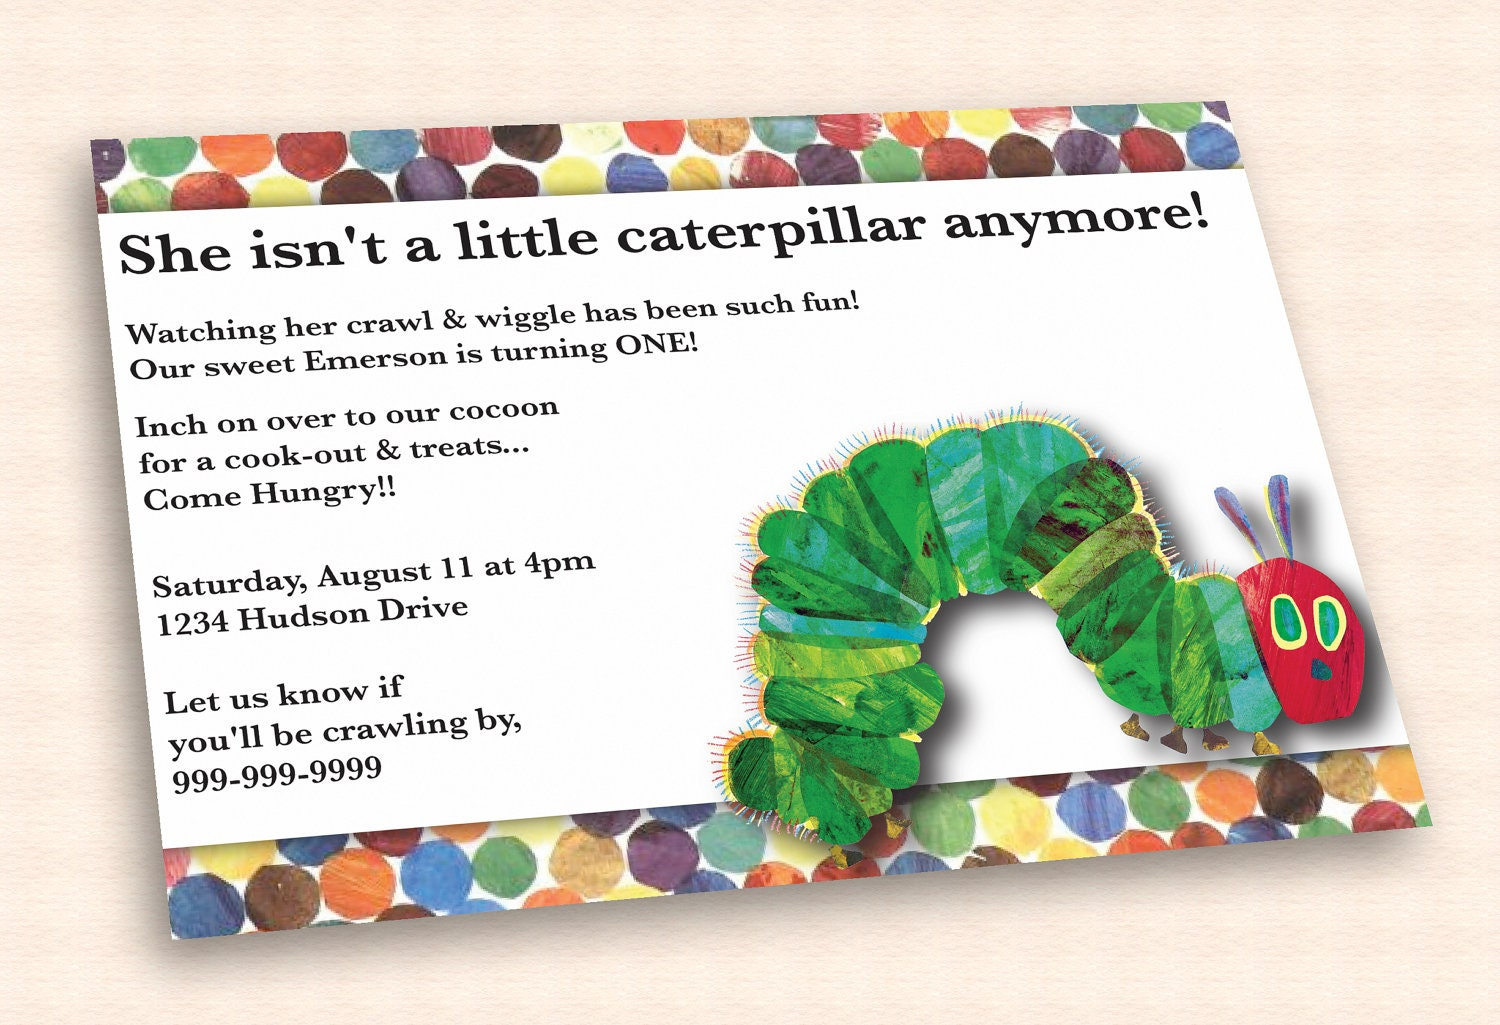 very hungry caterpillar birthday invitation by cuttlefishg on etsy. Black Bedroom Furniture Sets. Home Design Ideas